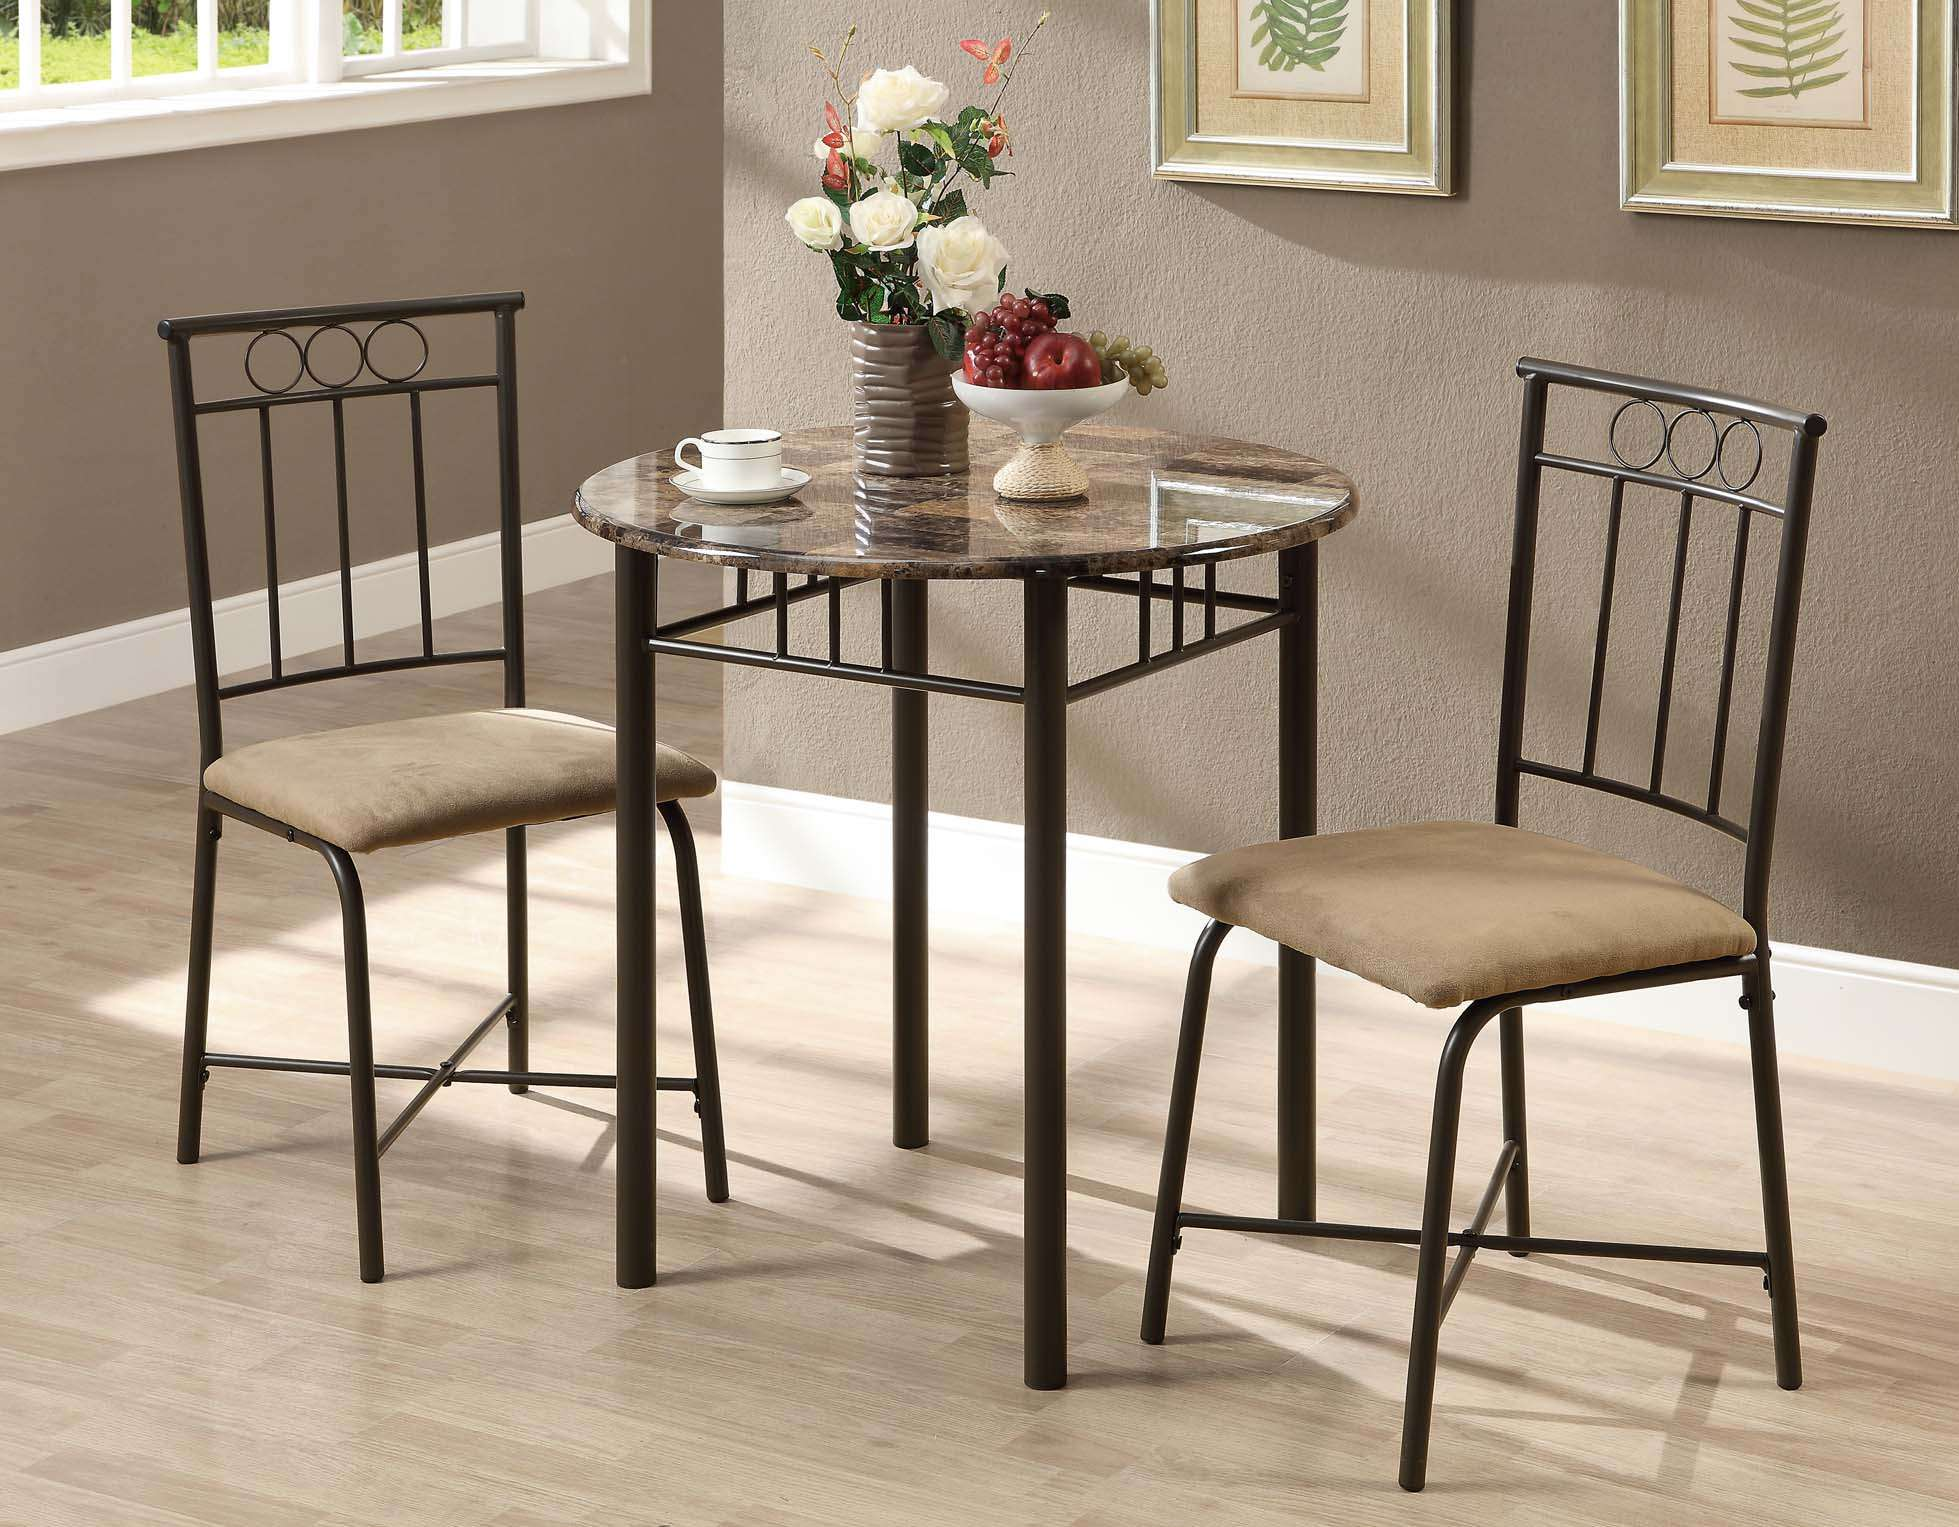 Cappuccino 3 Piece Dining Set with Bronze Frame